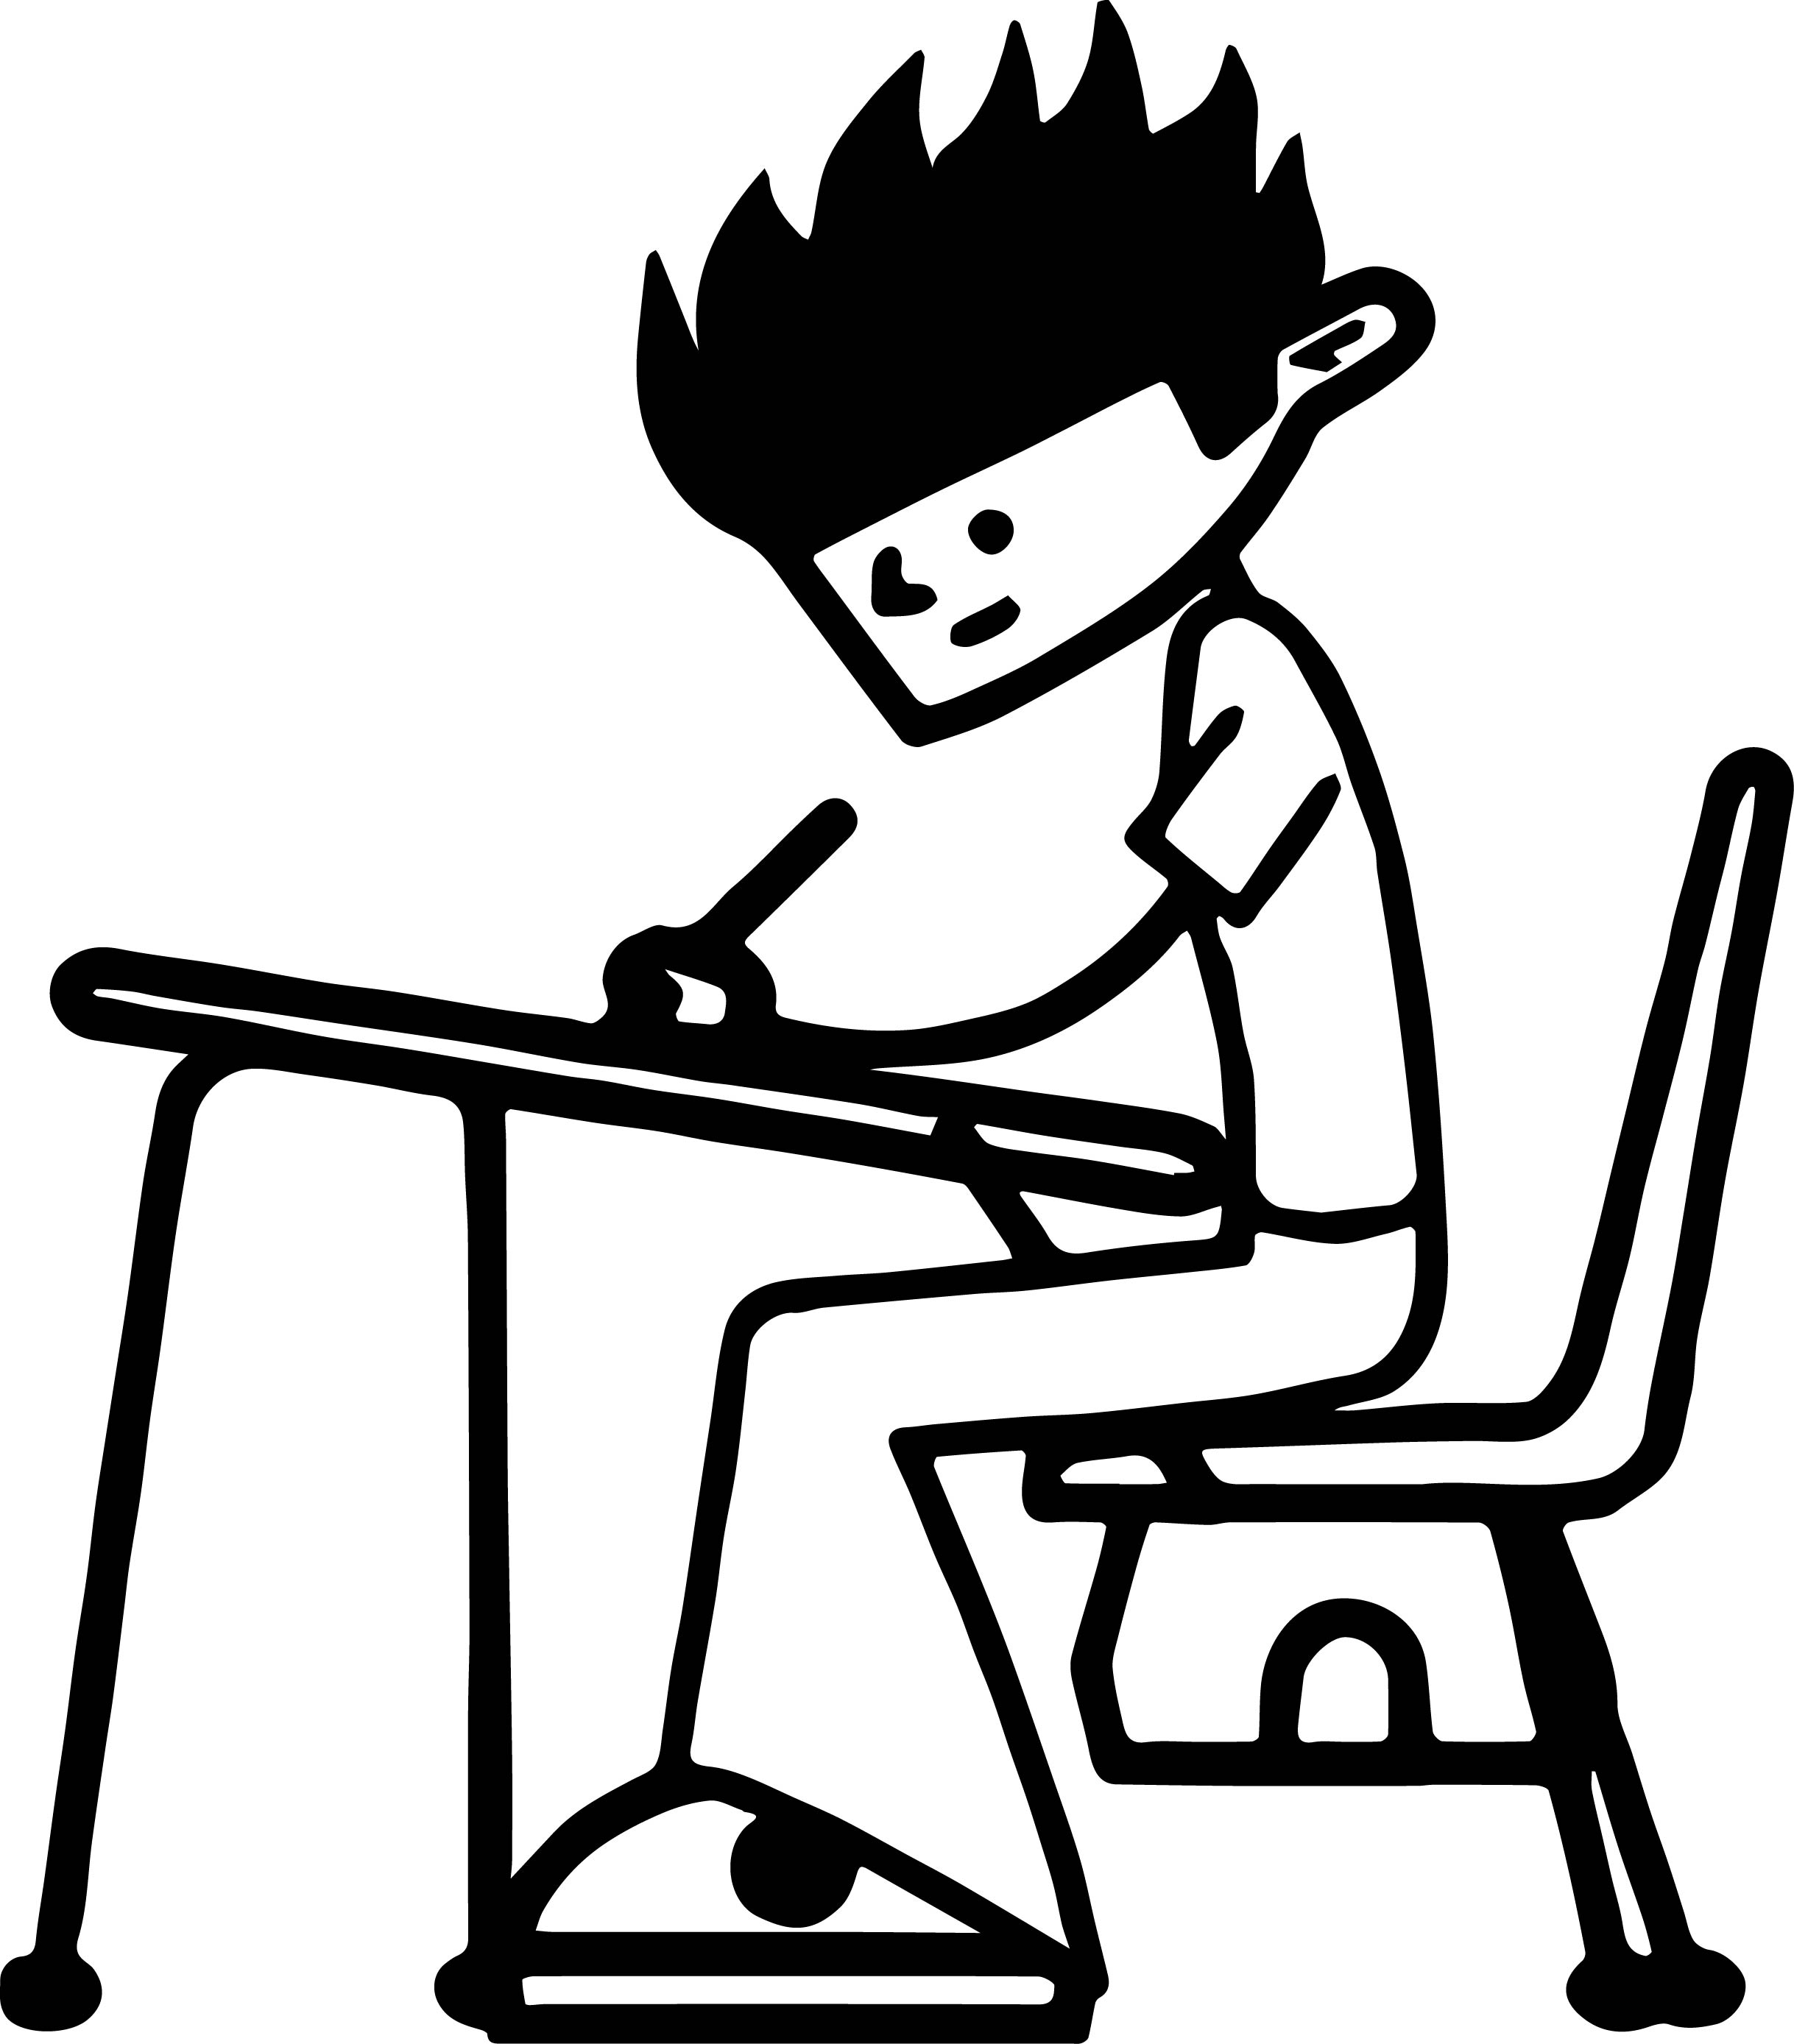 100 days of school coloring pages - 100 days of school boy coloring page